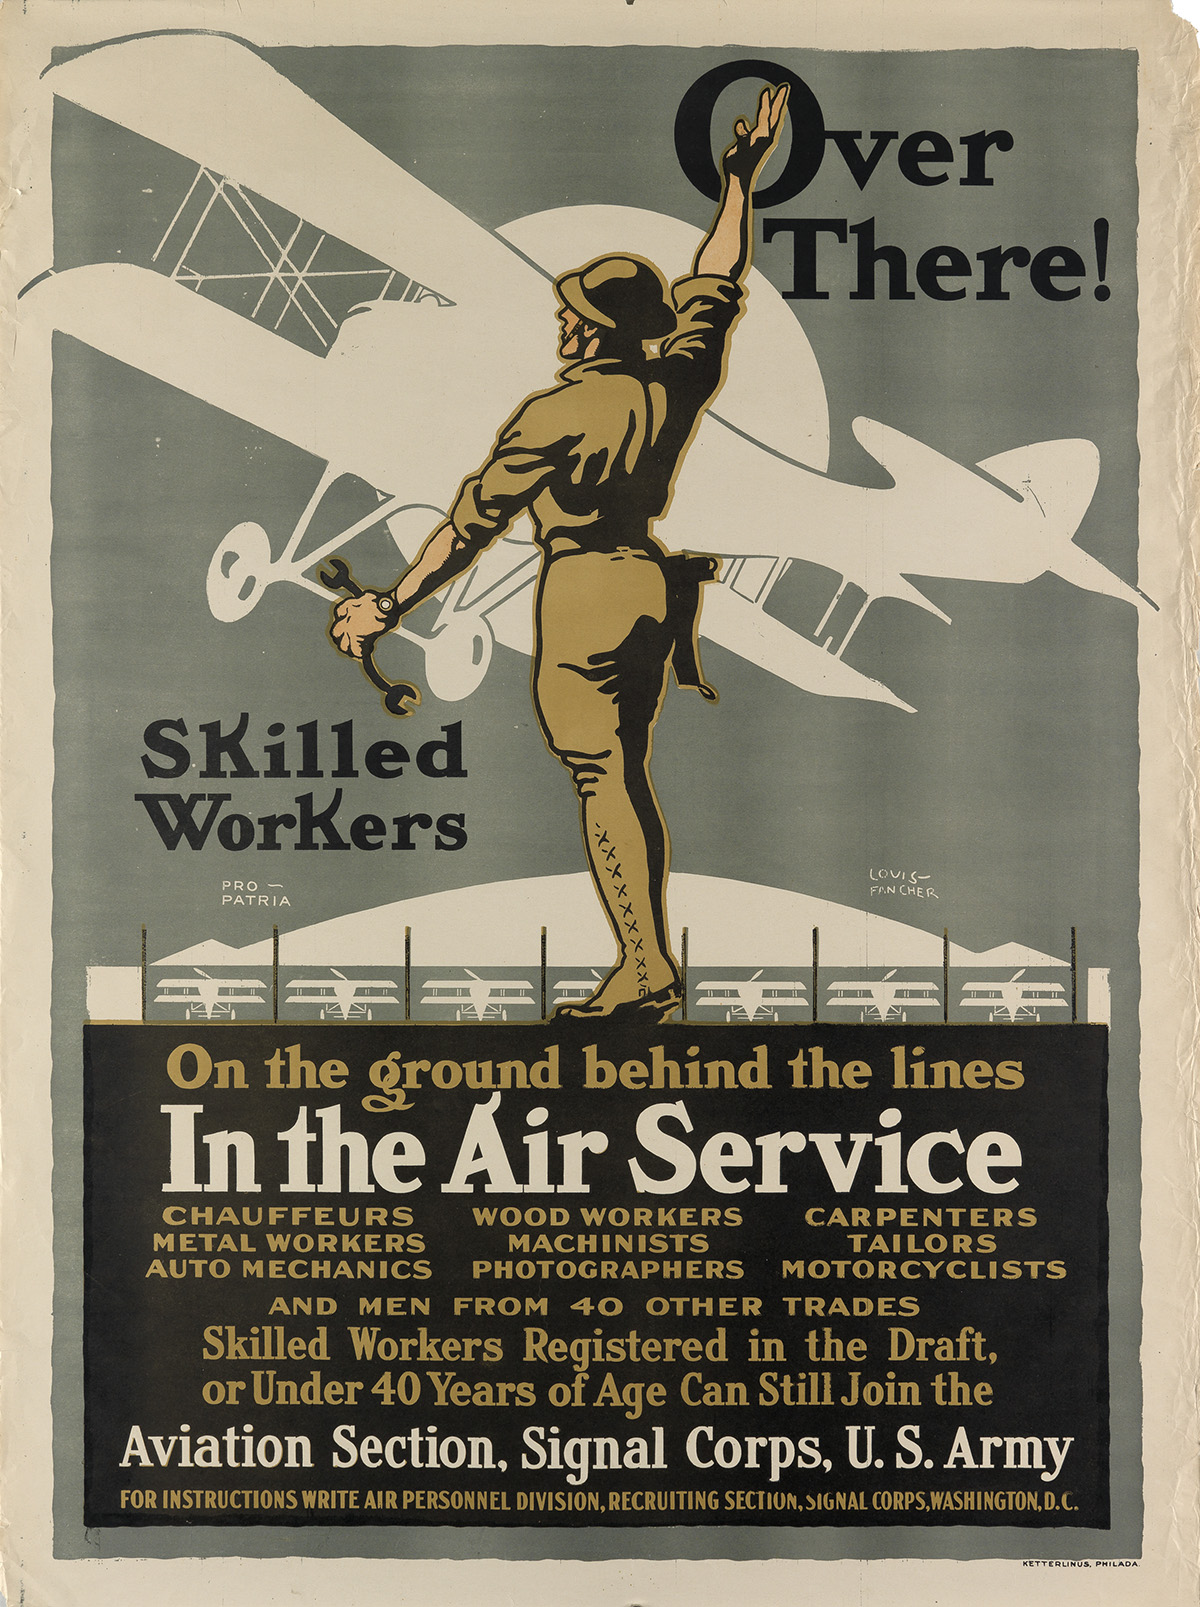 LOUIS-FANCHER-(1884-1944)-OVER-THERE--IN-THE-AIR-SERVICE-Cir